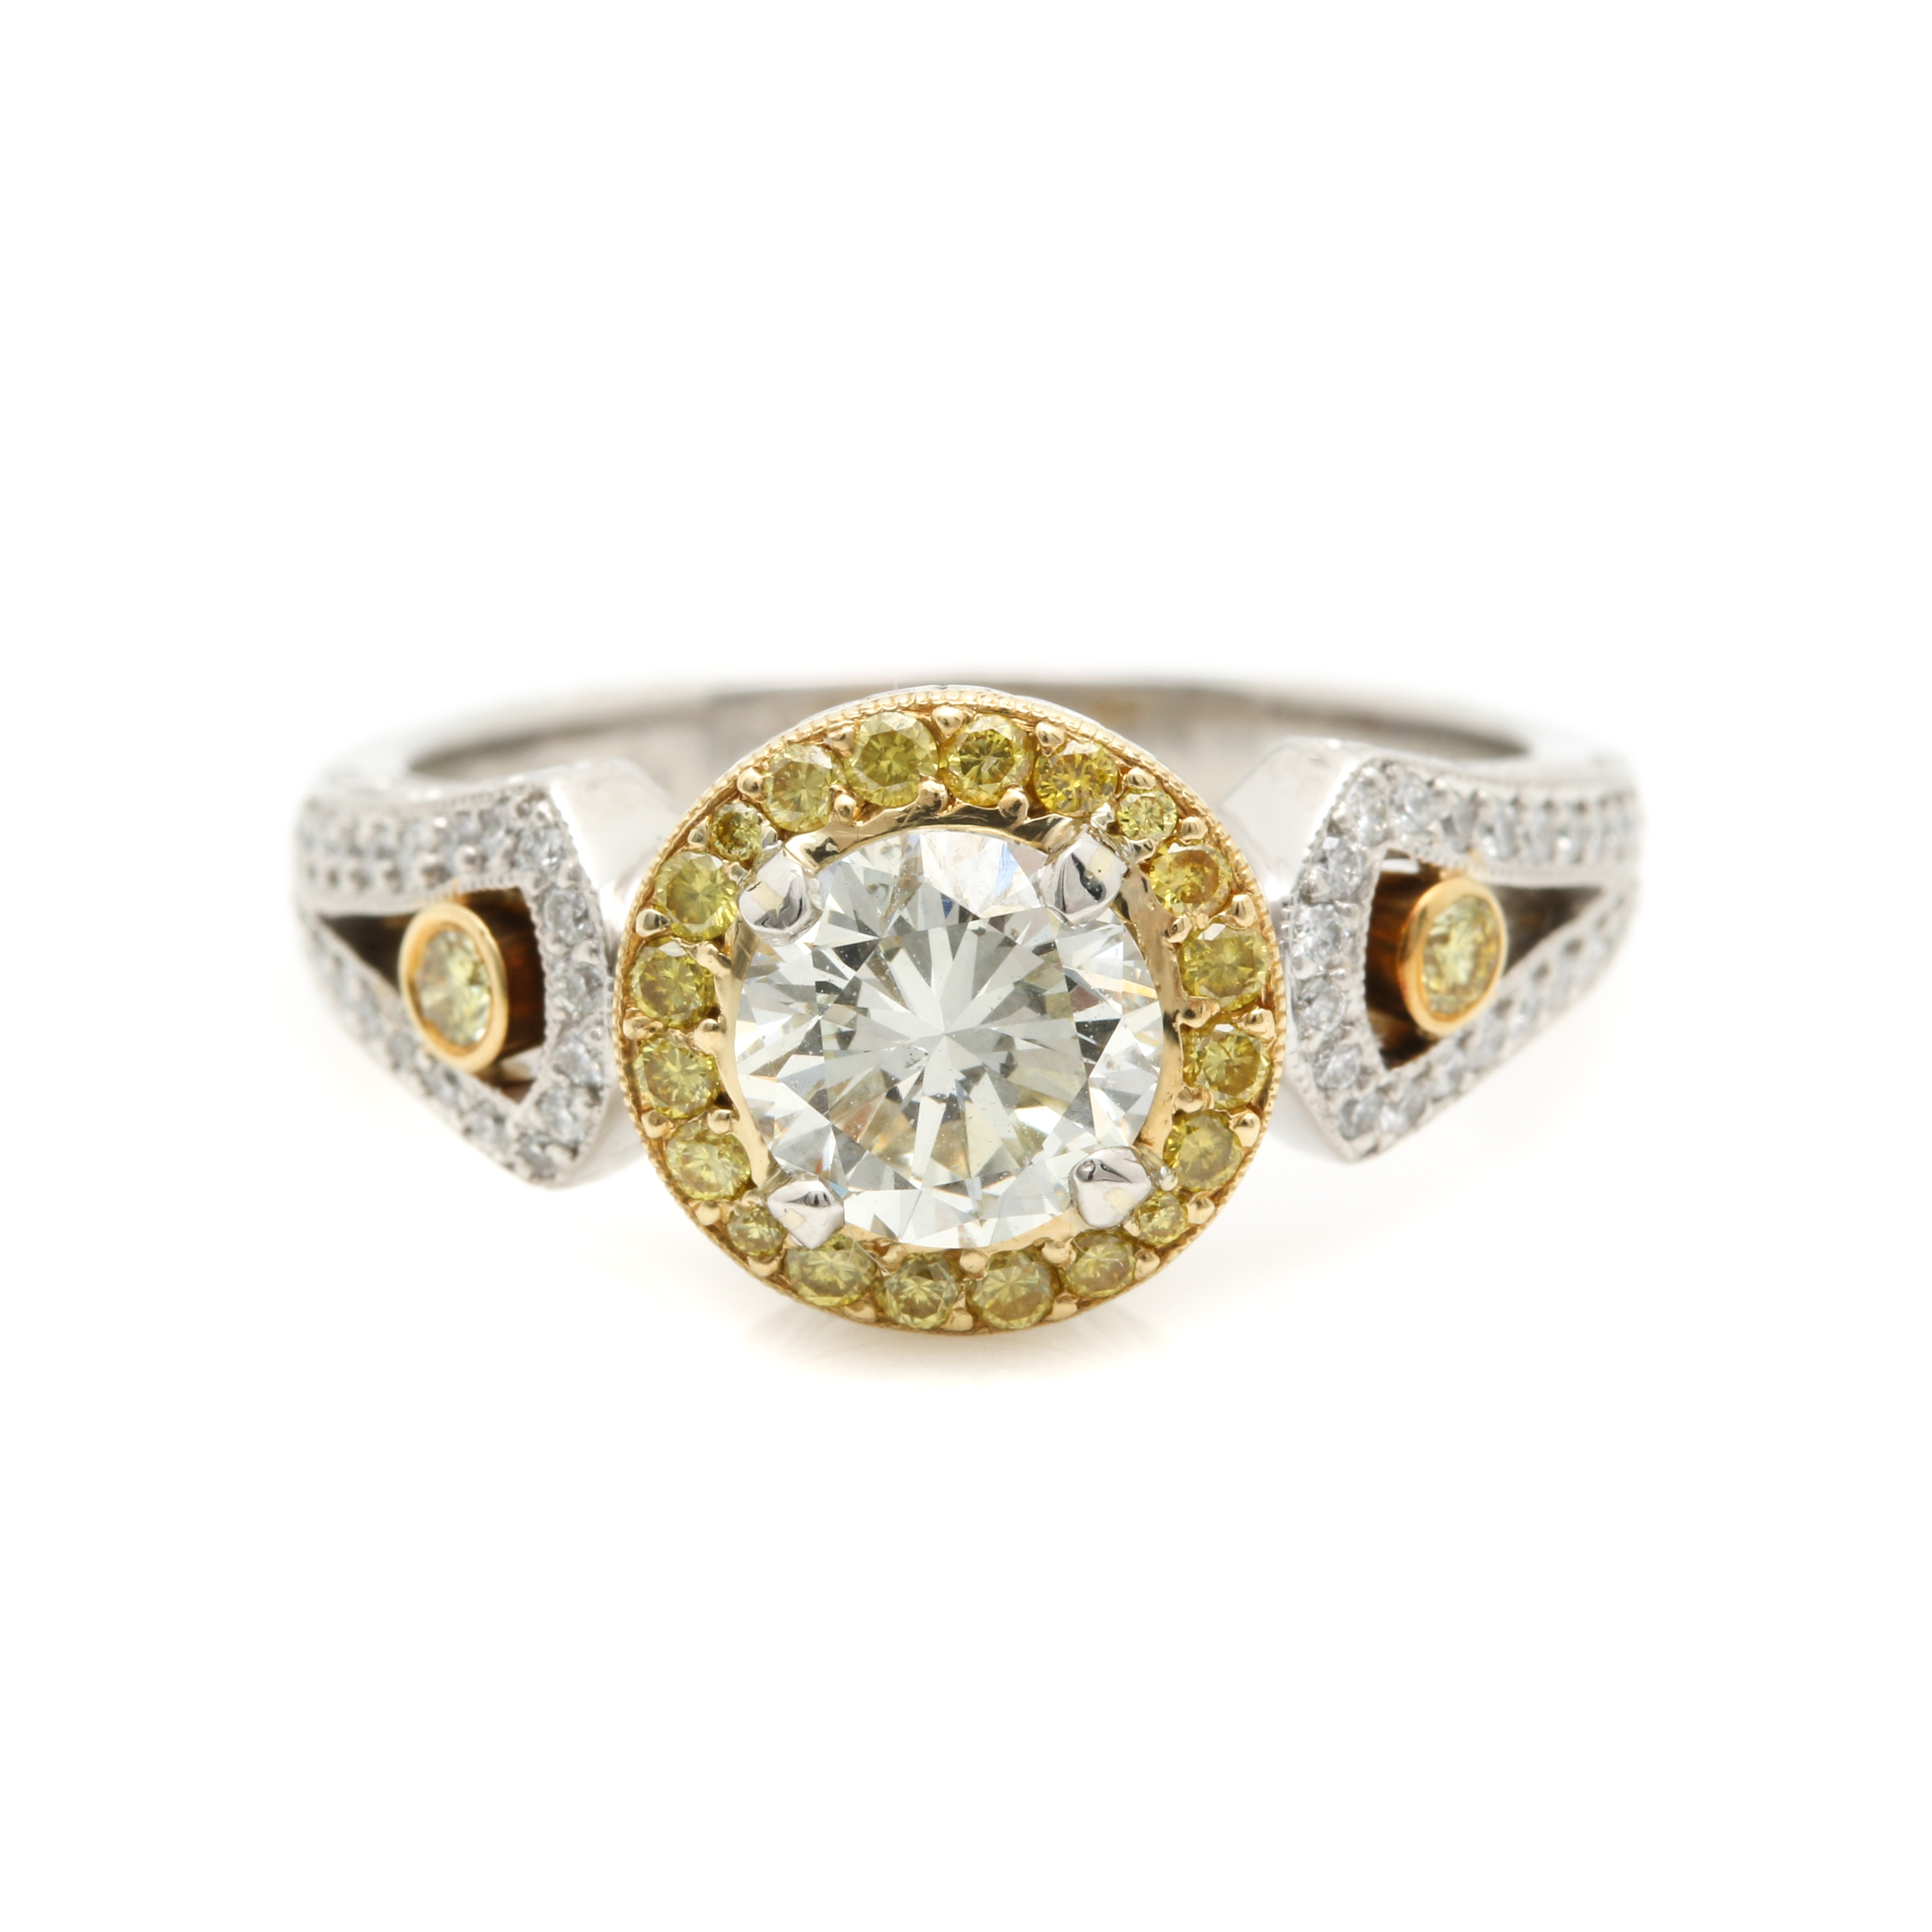 Michael Beaudry Platinum 1.38 CTW Diamond Ring with 18K Yellow Gold Accents